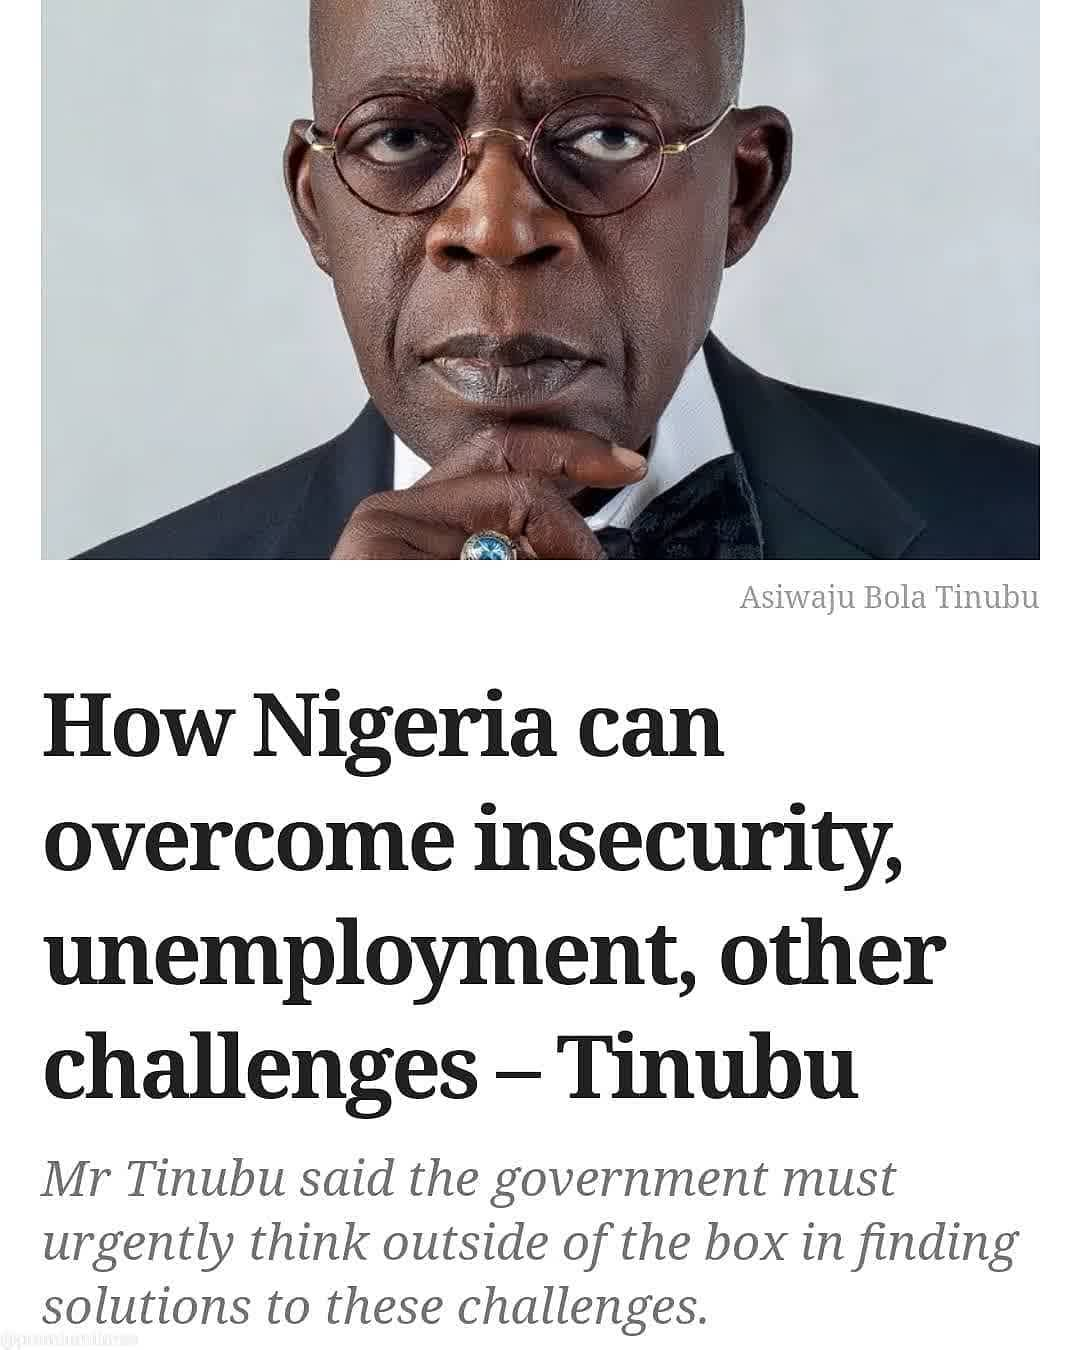 """The national leader of theAll Progressives Congress,Bola Tinubu, has outlined solutions to unemployment, insecurity, and other issues bedevilling the current administration.  Speaking at the opening of the 2021 annual Arewa House Lectures, which he chaired on Saturday in Kaduna, Mr Tinubu called on the Federal Government to invest massively in job creation.  The lecture was on """"Reduction of the Cost of Governance for Inclusive Growth and Youth Development in Northern Nigeria in a Post- COVID-19 era"""".  He said the government must urgently think outside of the box in finding solutions to the challenges posed by unemployment.  According to him, the frustration and despair among the youth were largely caused by chronic poverty and breakdown in social institutions.  """"Building vital infrastructure such as irrigation and water catchment systems will help agriculture, arrest desertification and provide jobs.  """"Another readily available area primed for investment is the agro-allied industry which, for the northern region is particularly advantageous,"""" he said.  Mr Tinubu added that government must implement a national industrial policy to encourage key industries to begin to employ the country's growing population.  Herders/Farmers crisis  On the herder/farmer dispute, the former Lagos State Governor said the government """"must appreciate that martial security measures alone will not suffice"""".  """"Problems that are essentially of an economic origin must also have an economic solution.  """"Enhanced security may be the necessary first step, but it cannot be the only step.  """"We cannot resolve this problem by holding on to one-dimensional answers. We must all be dispassionate in our search for solutions.  """"These challenges are multi-faceted and so the solutions must be.  """"The issue of insecurity, unemployment and extremism has many things to do with governance, over time."""